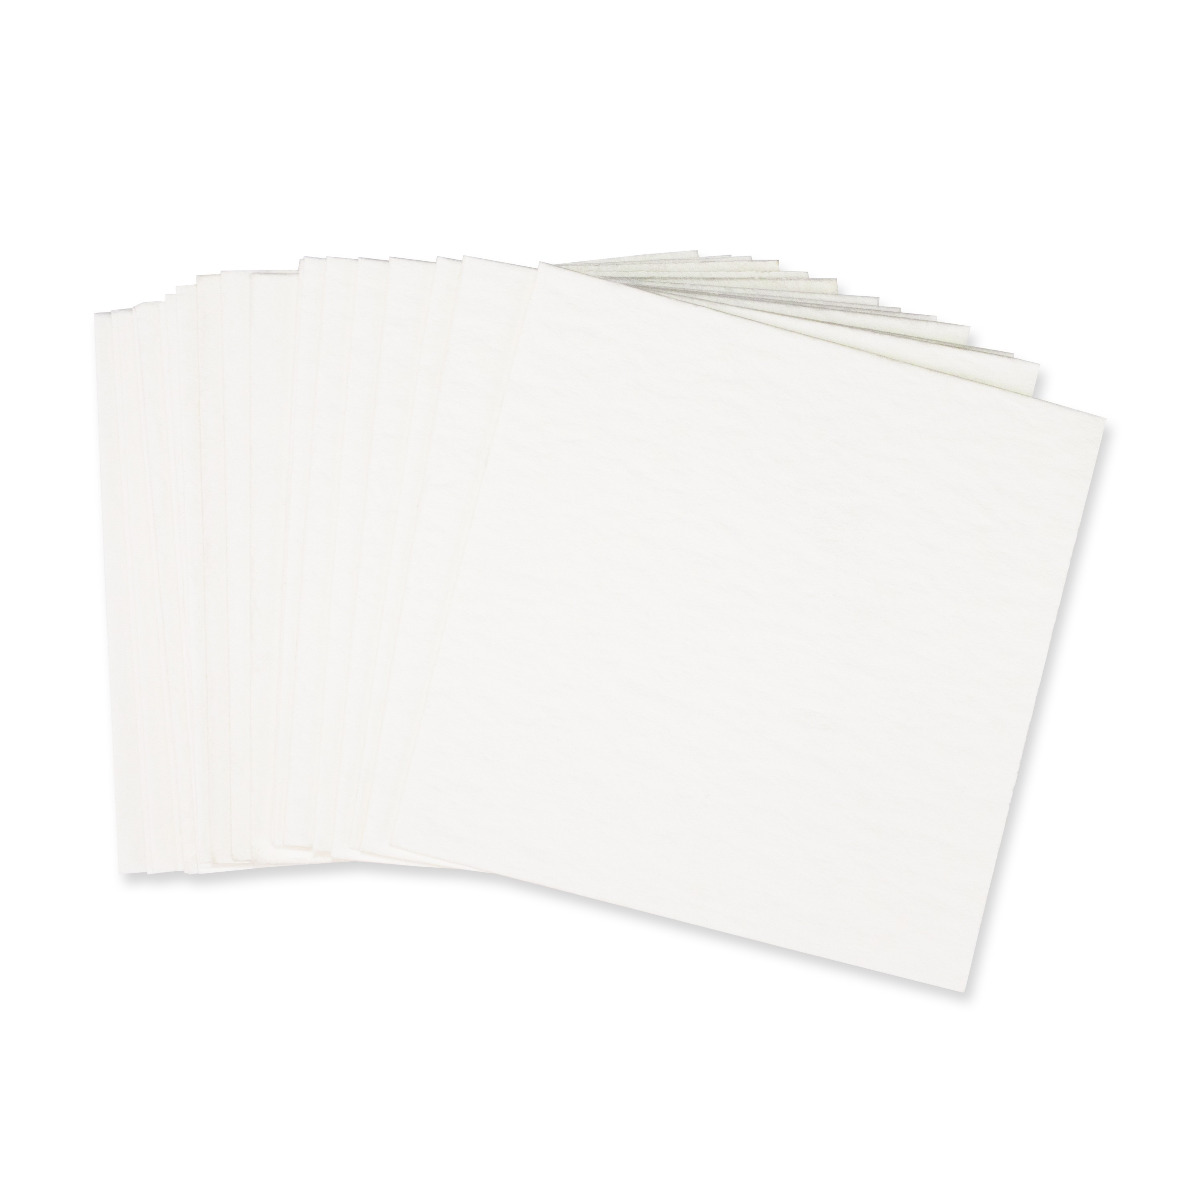 "Non-Asbestos Paper Bases - Square Base - 5"" x 5"""